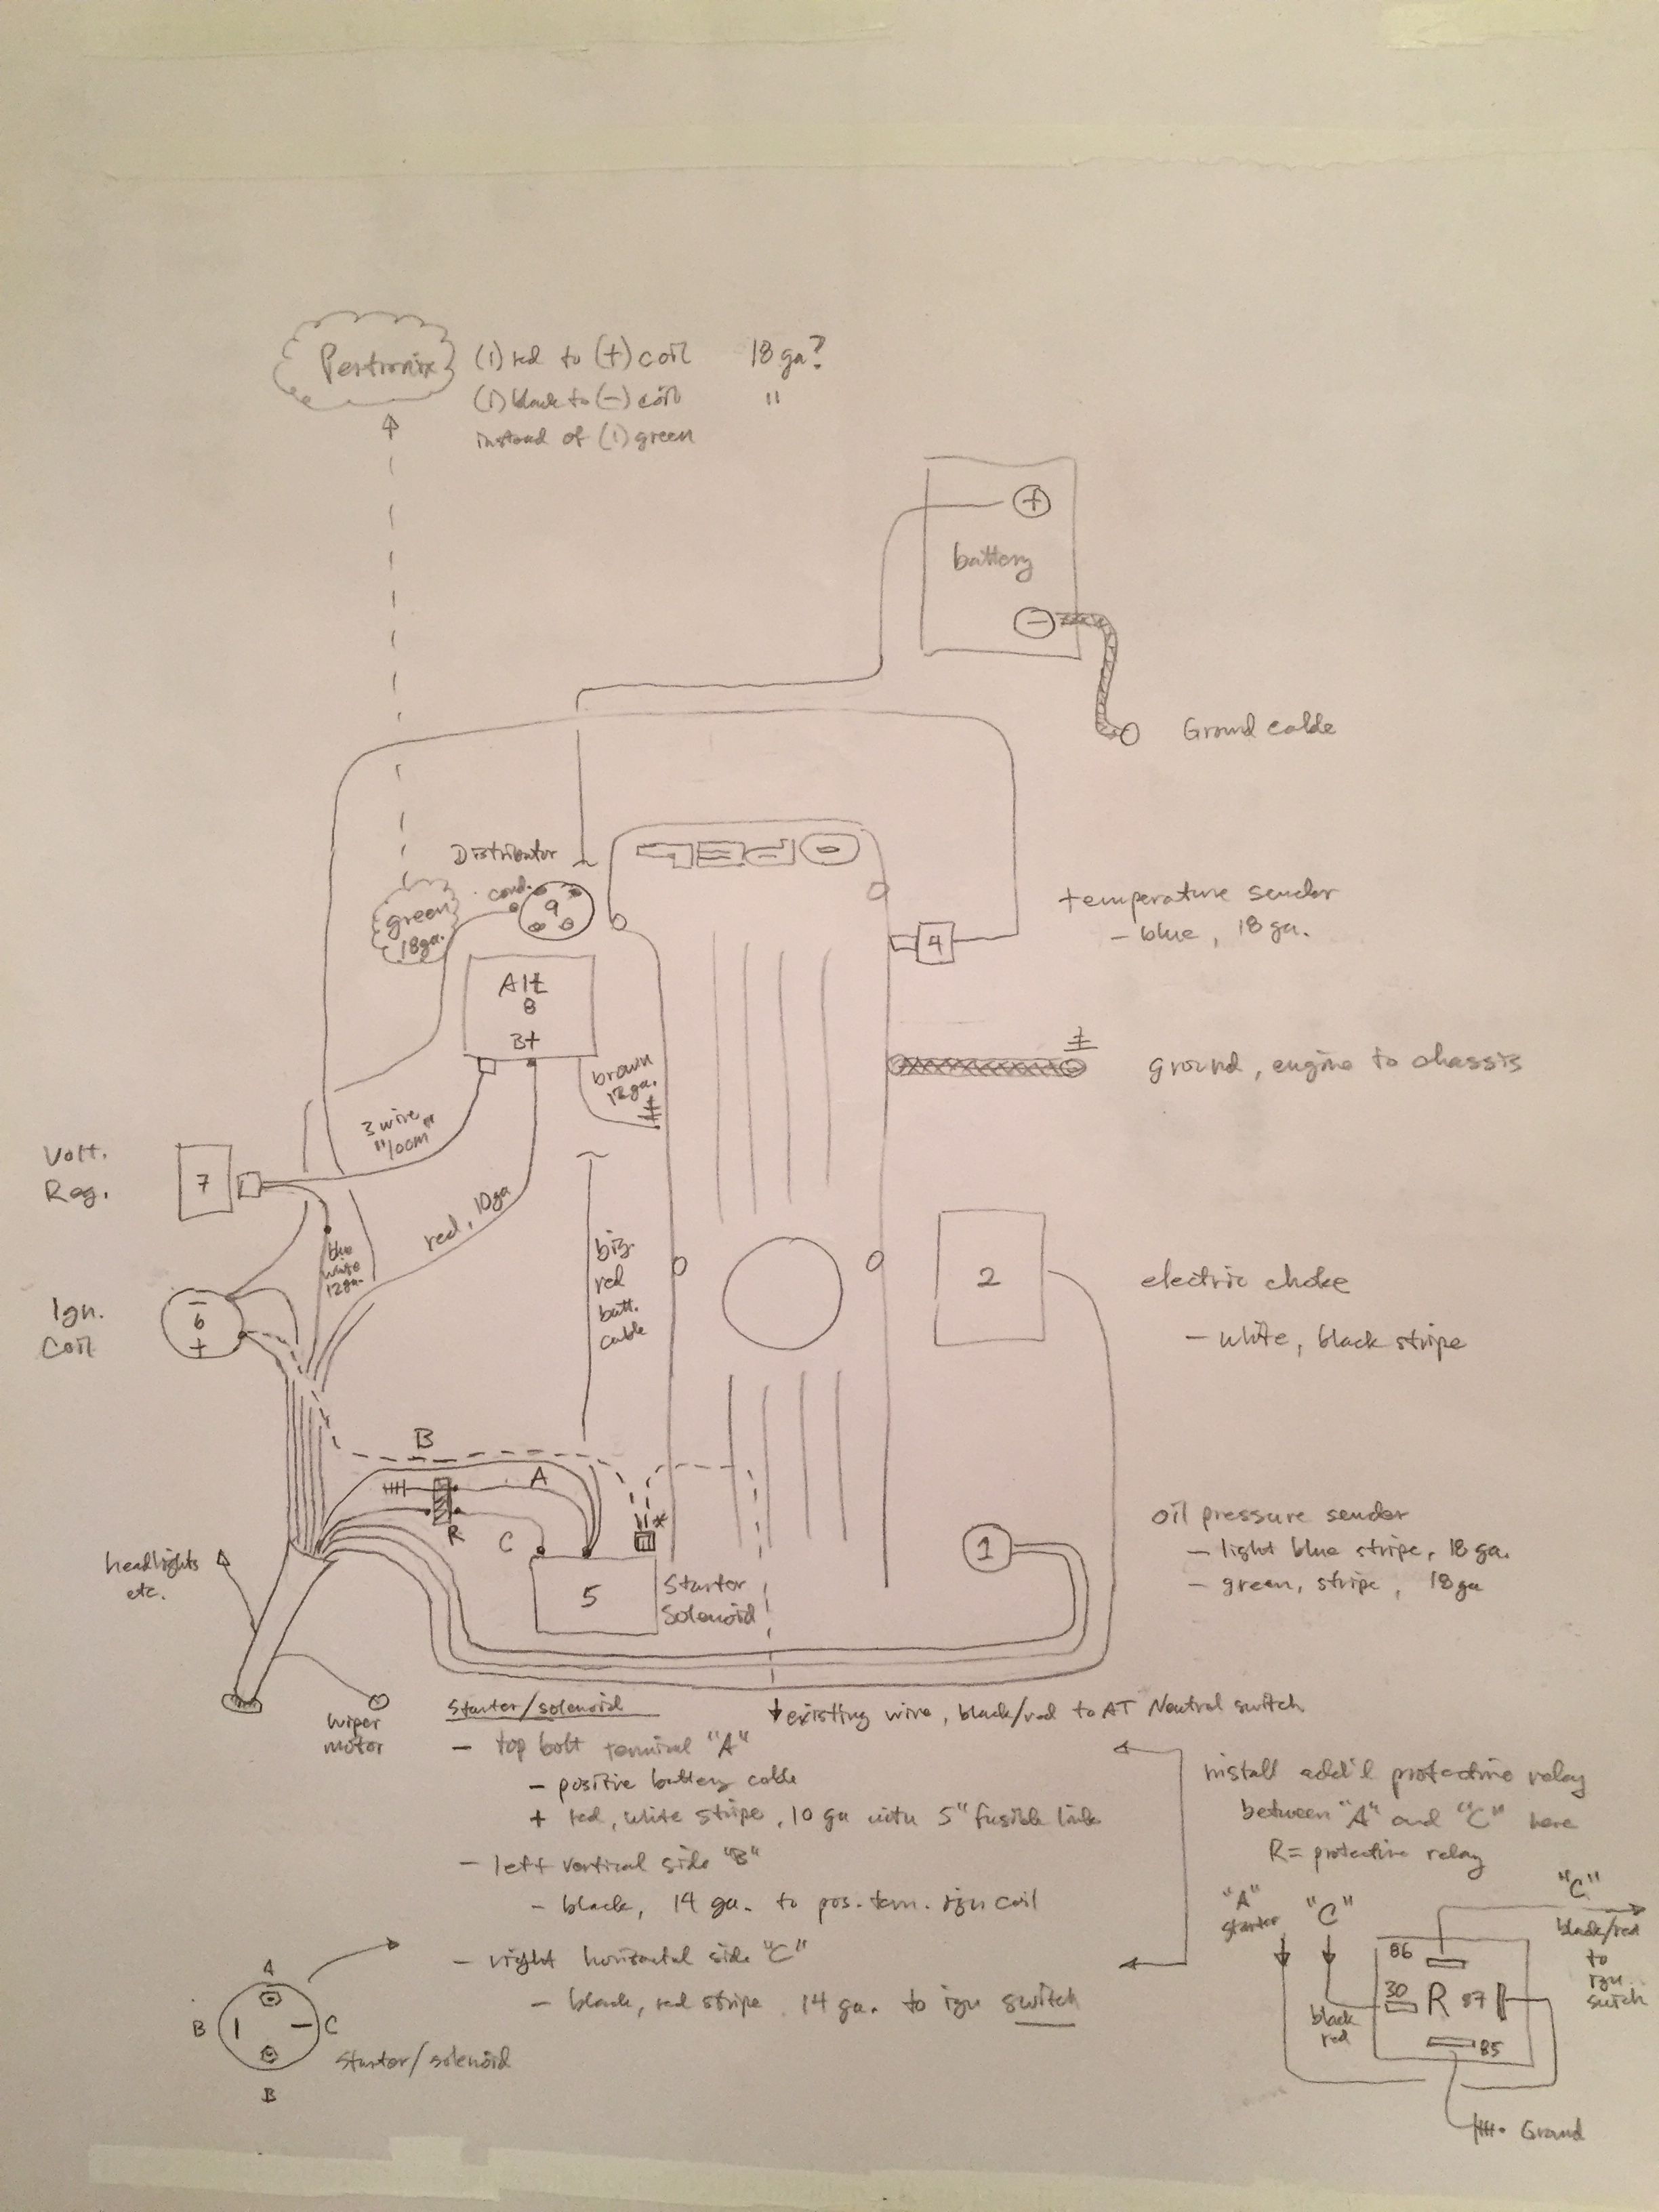 Wiring sketch for the engine bay. We have to start at the loom in the